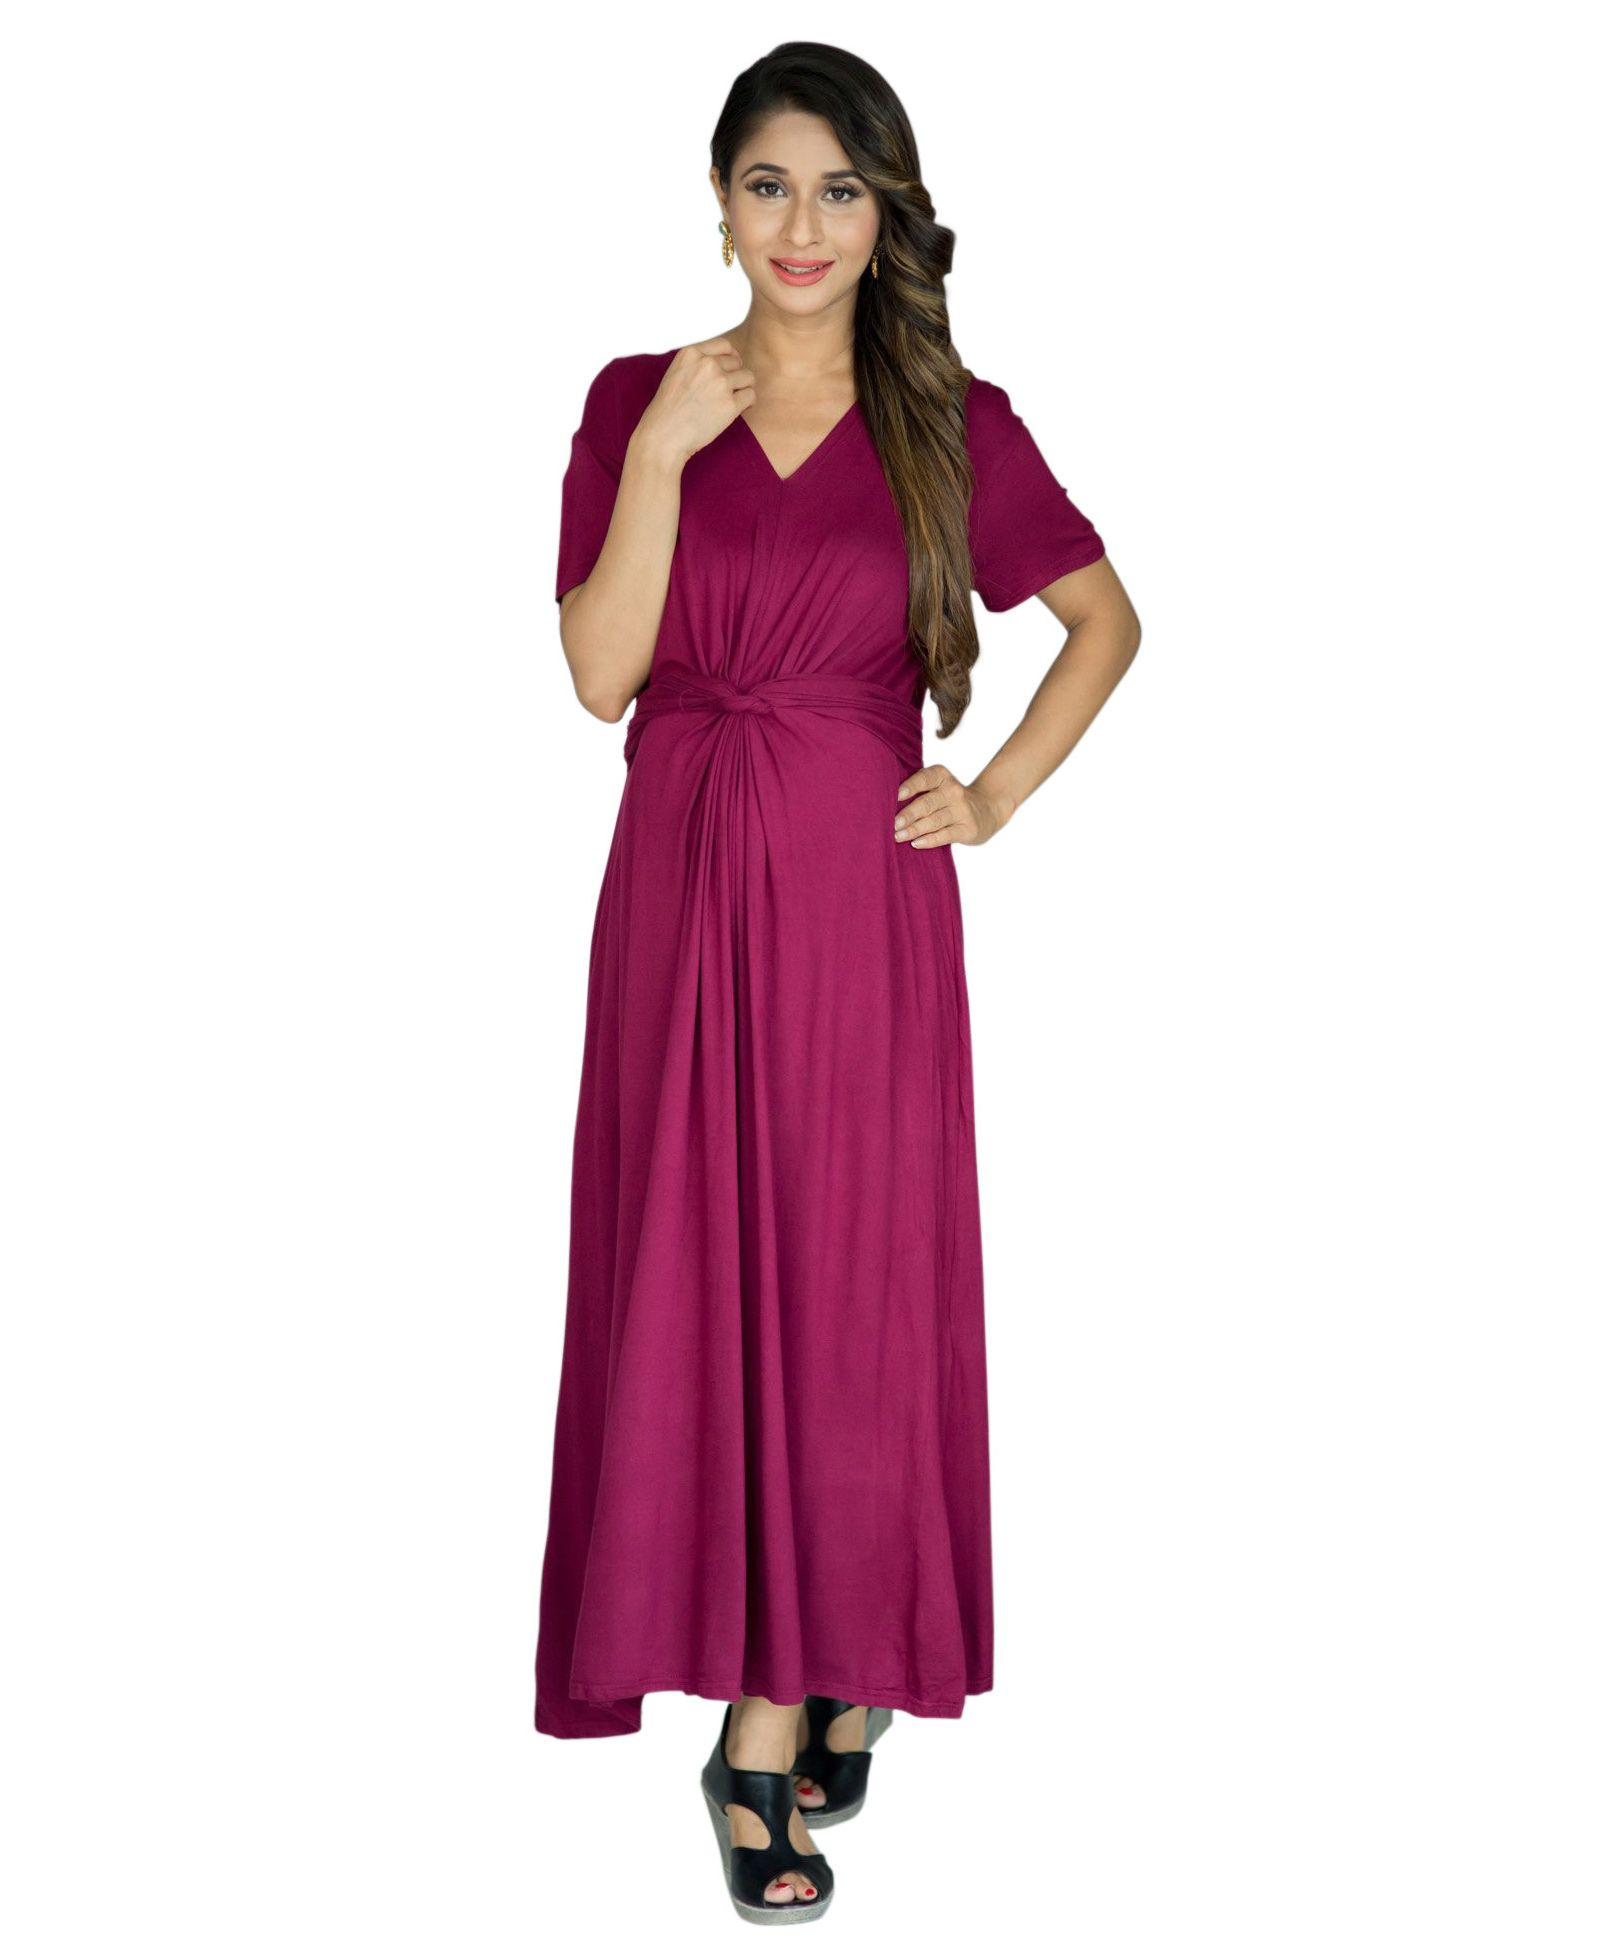 642a9b756 Indian Party Dresses For Pregnant Ladies - raveitsafe